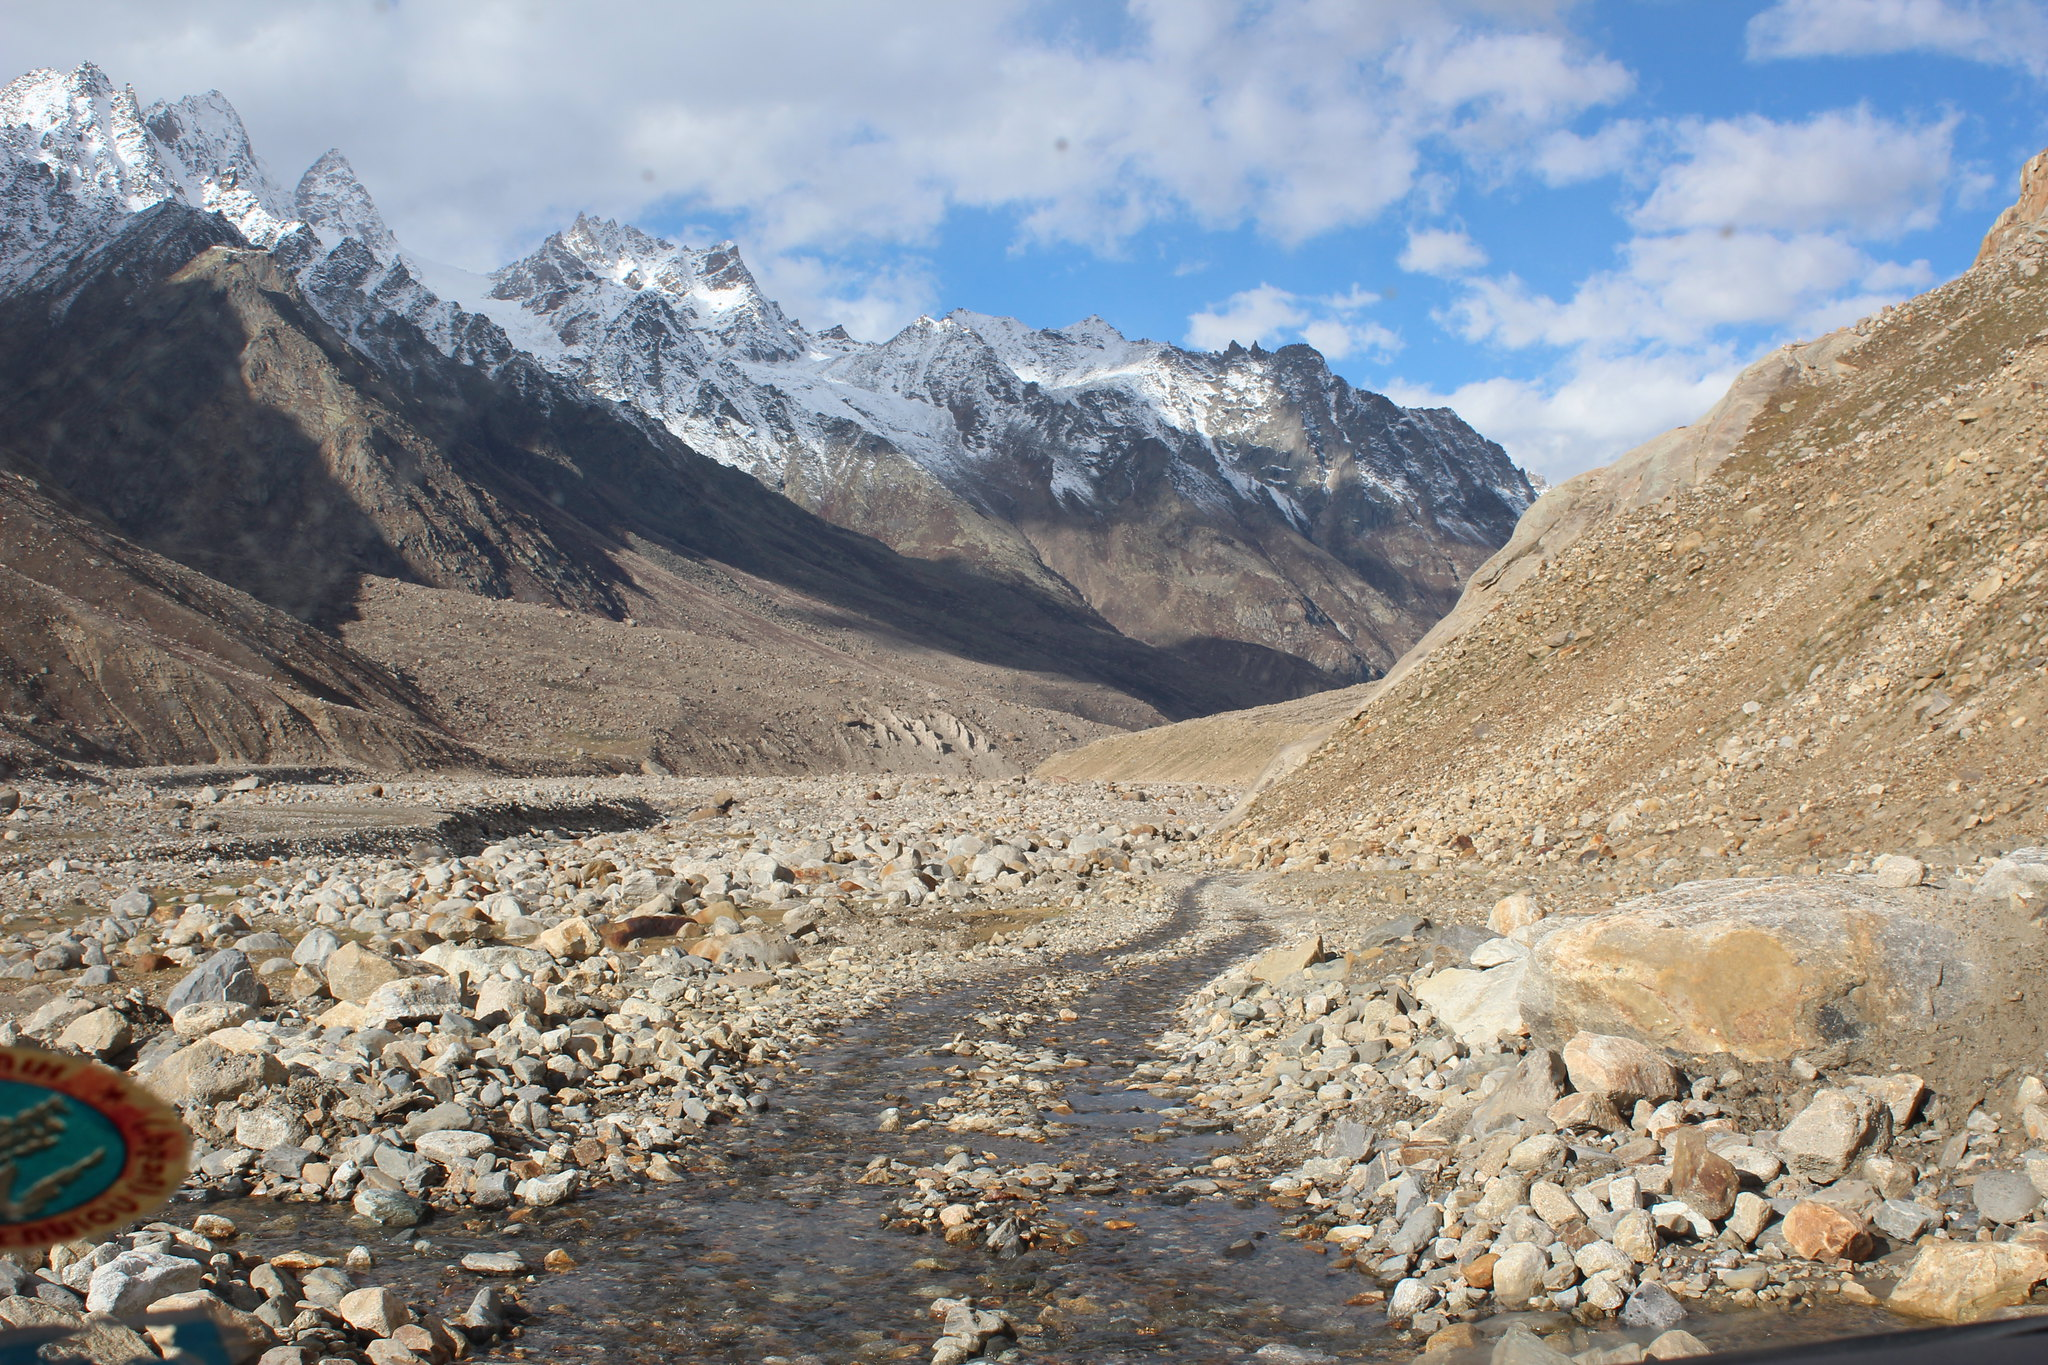 Condition of the Road to Kaza